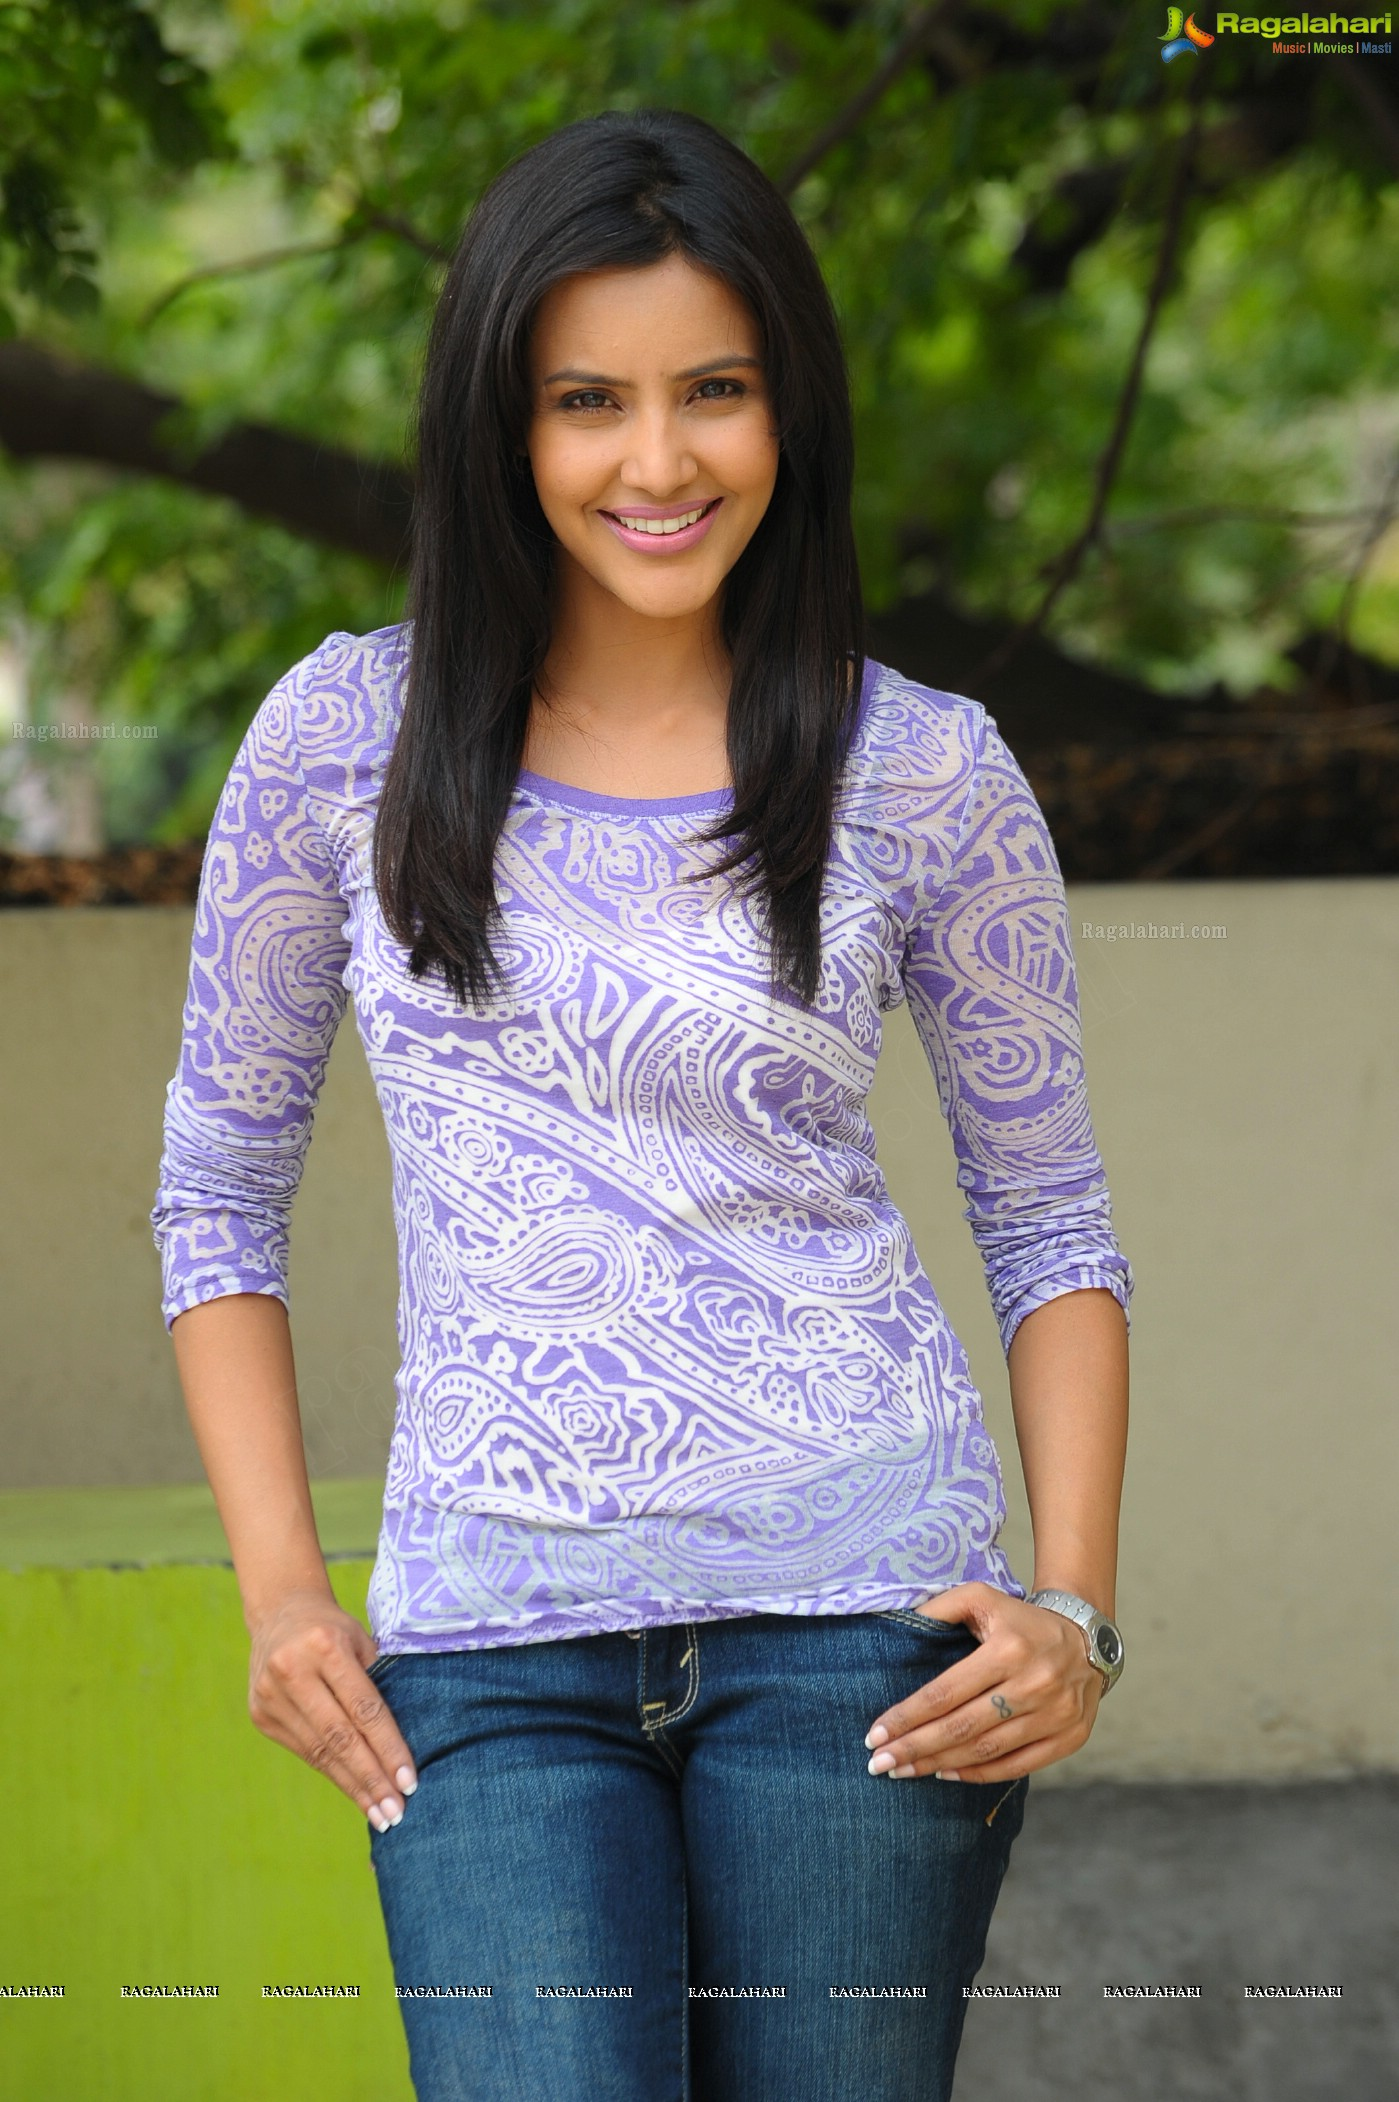 priya anand (posters) image 3 | tollywood heroines images,images